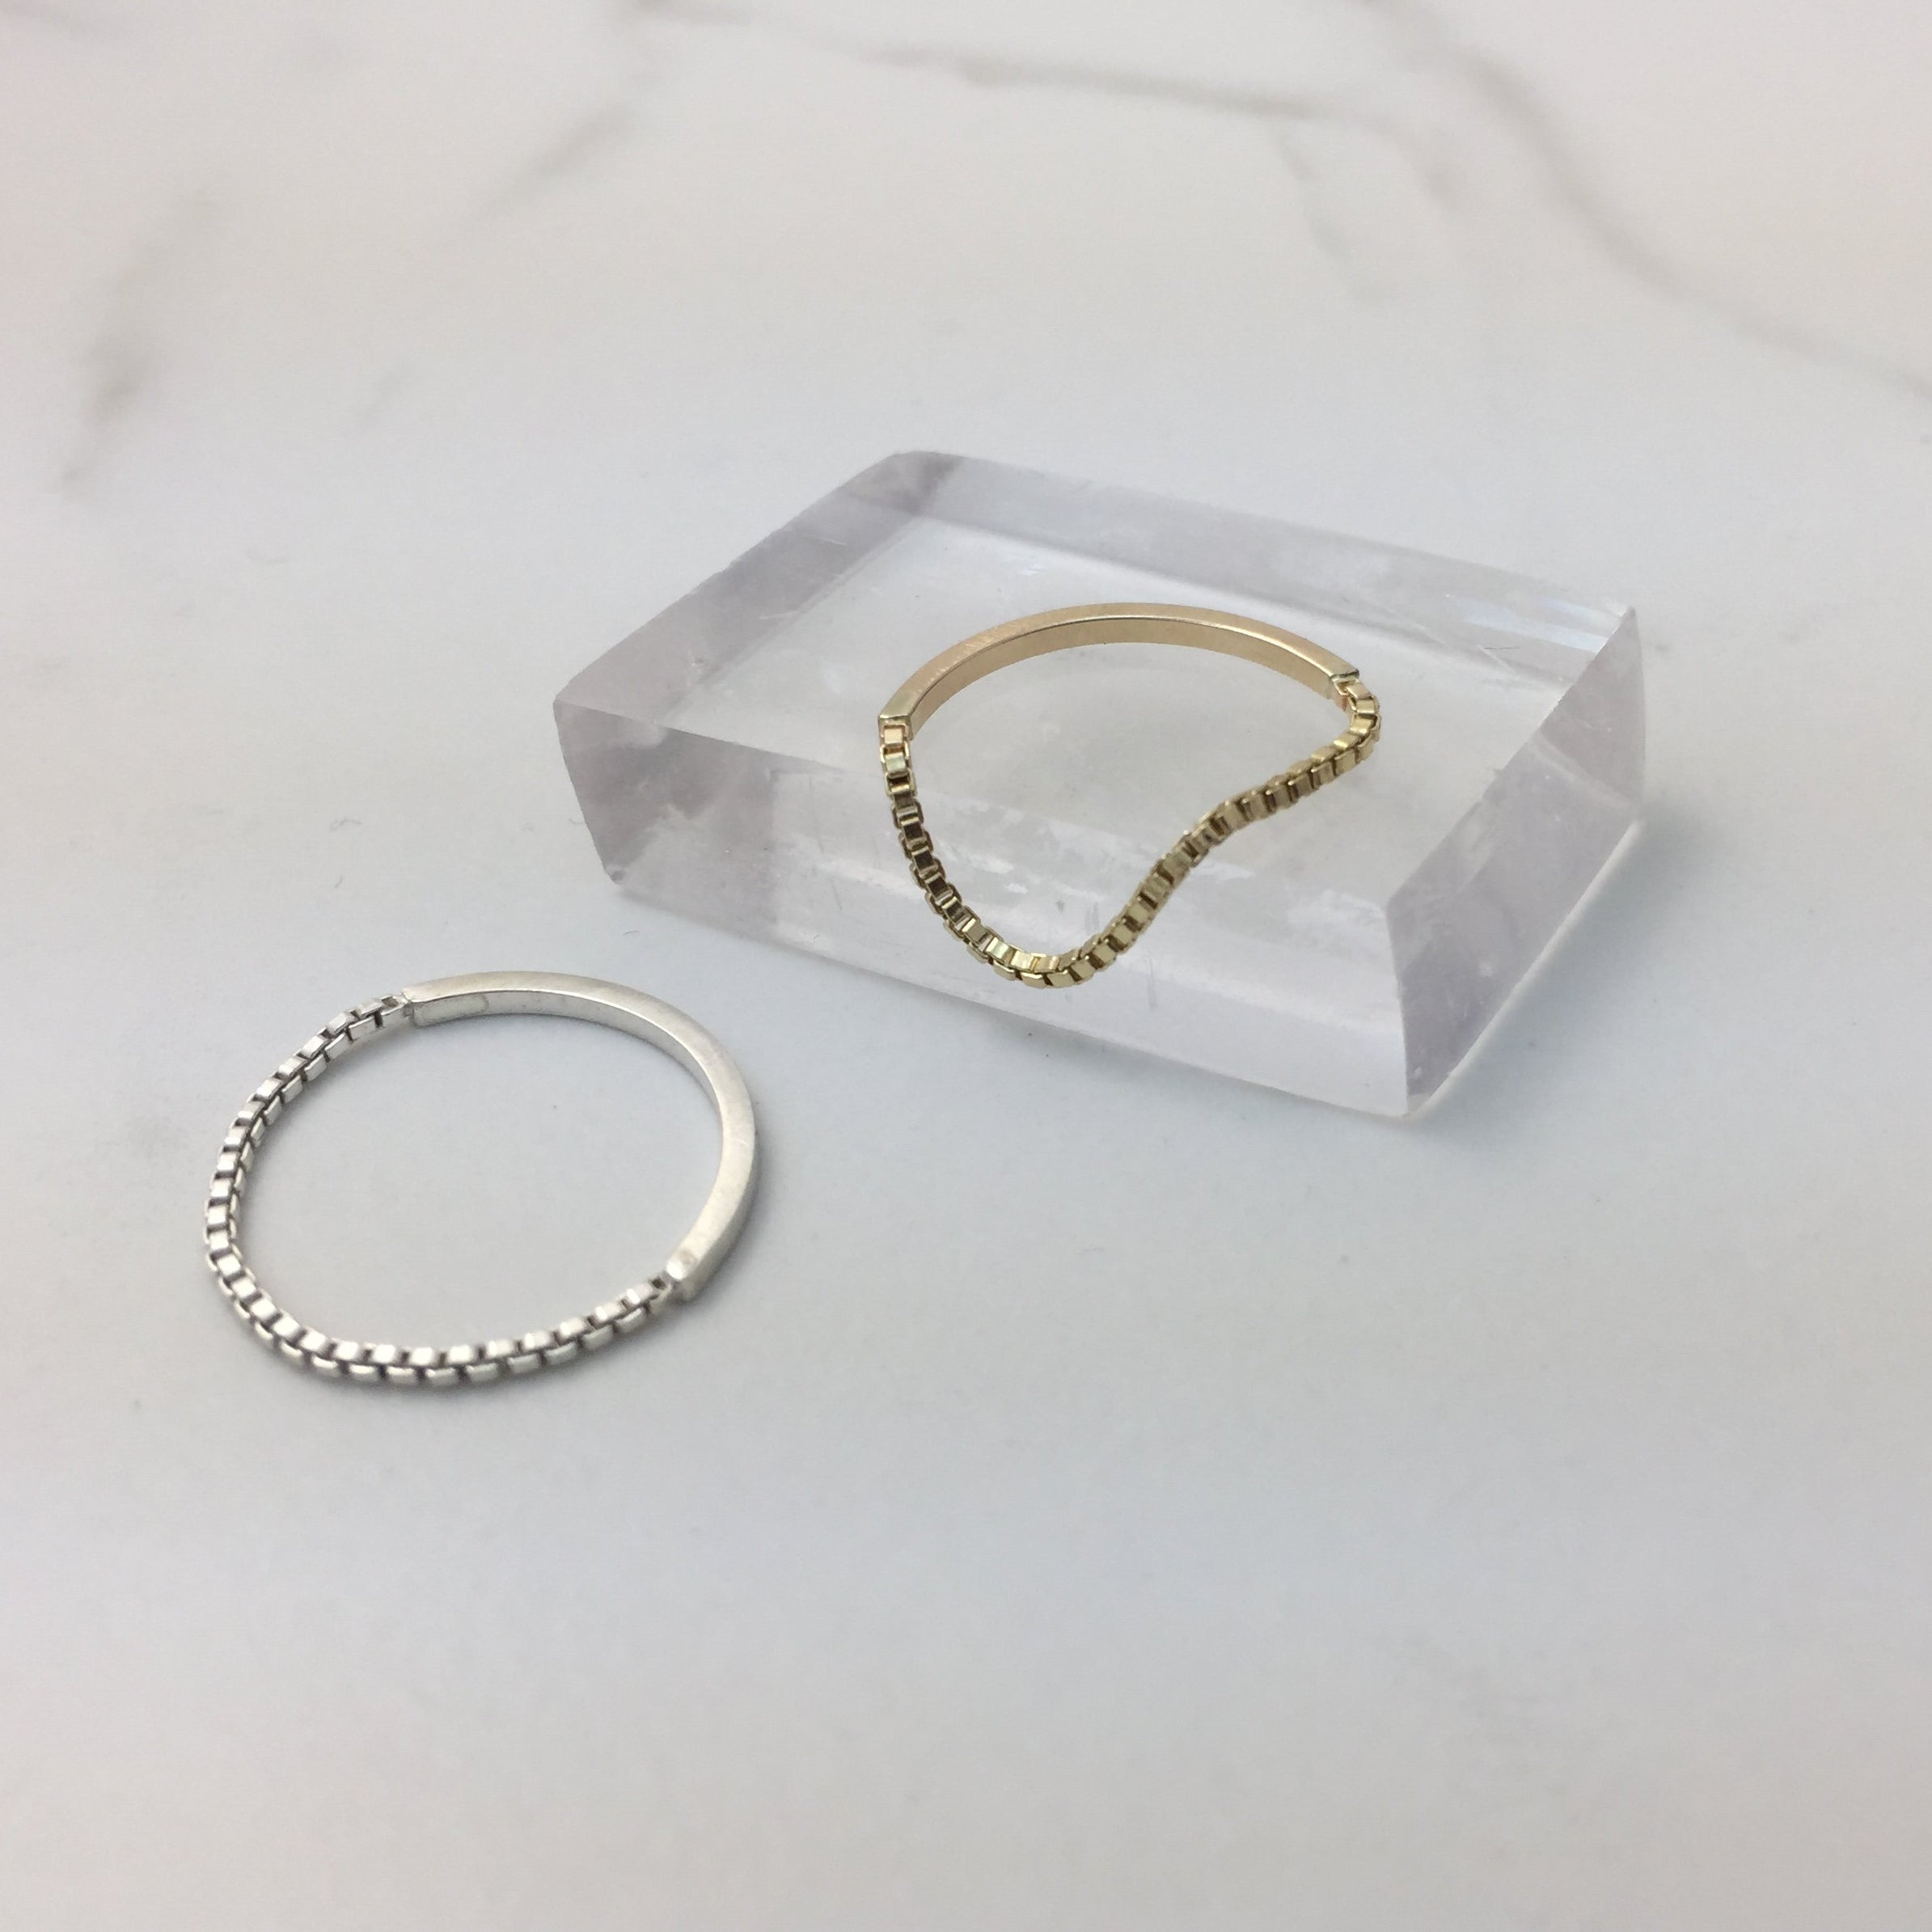 DAINTY CHAIN STACK RING